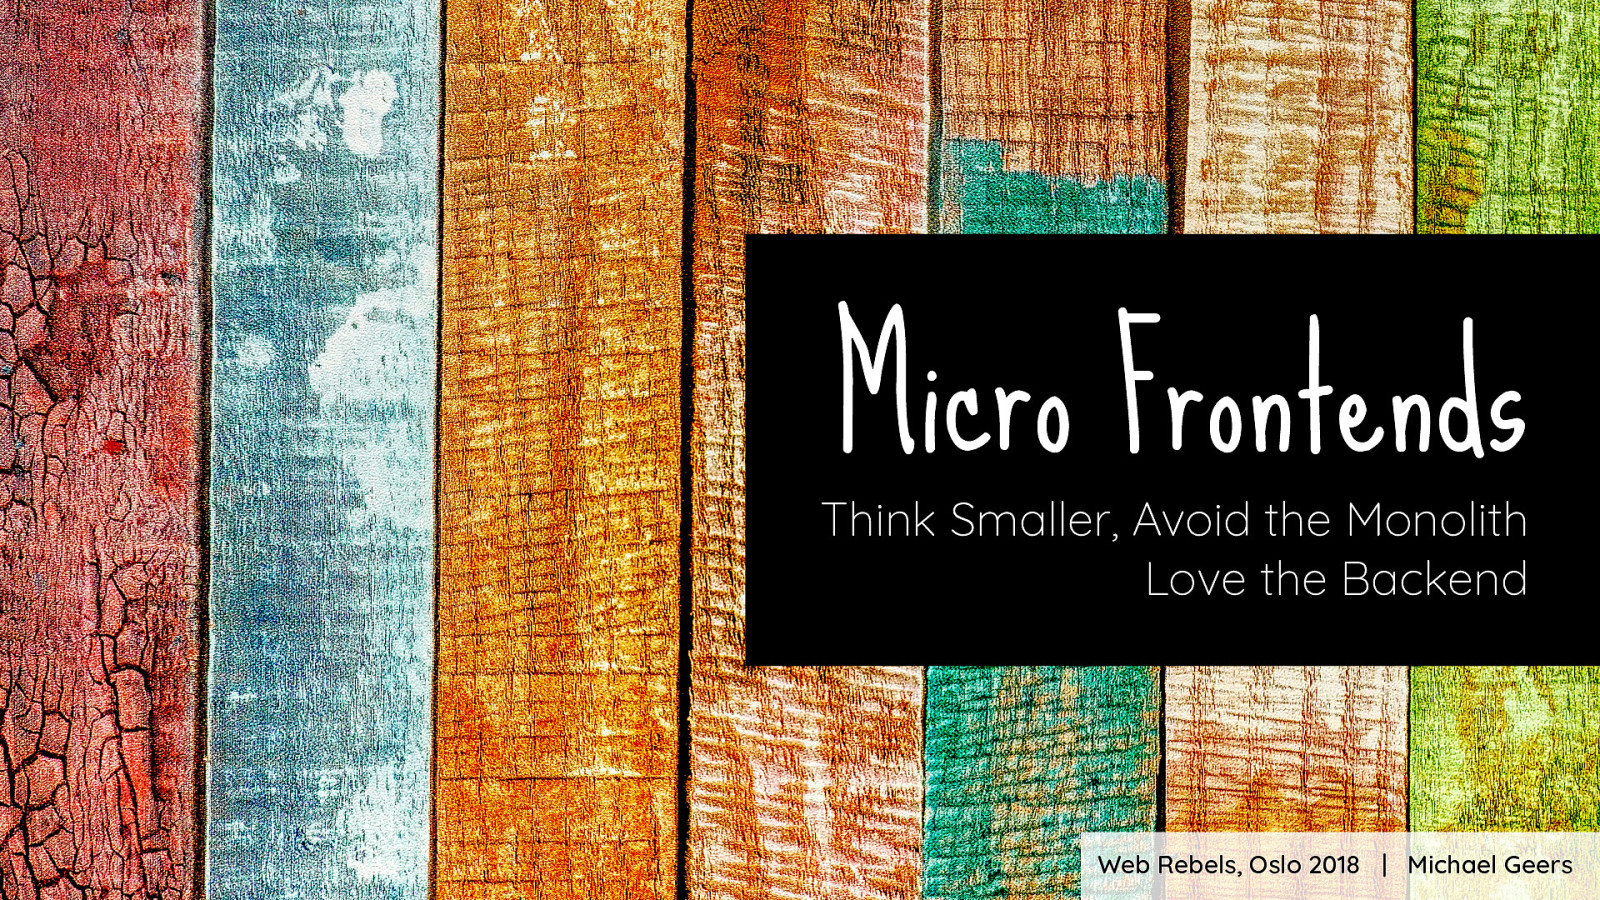 Micro Frontends - Think Smaller, Avoid the Monolith Love the Backend by Michael Geers